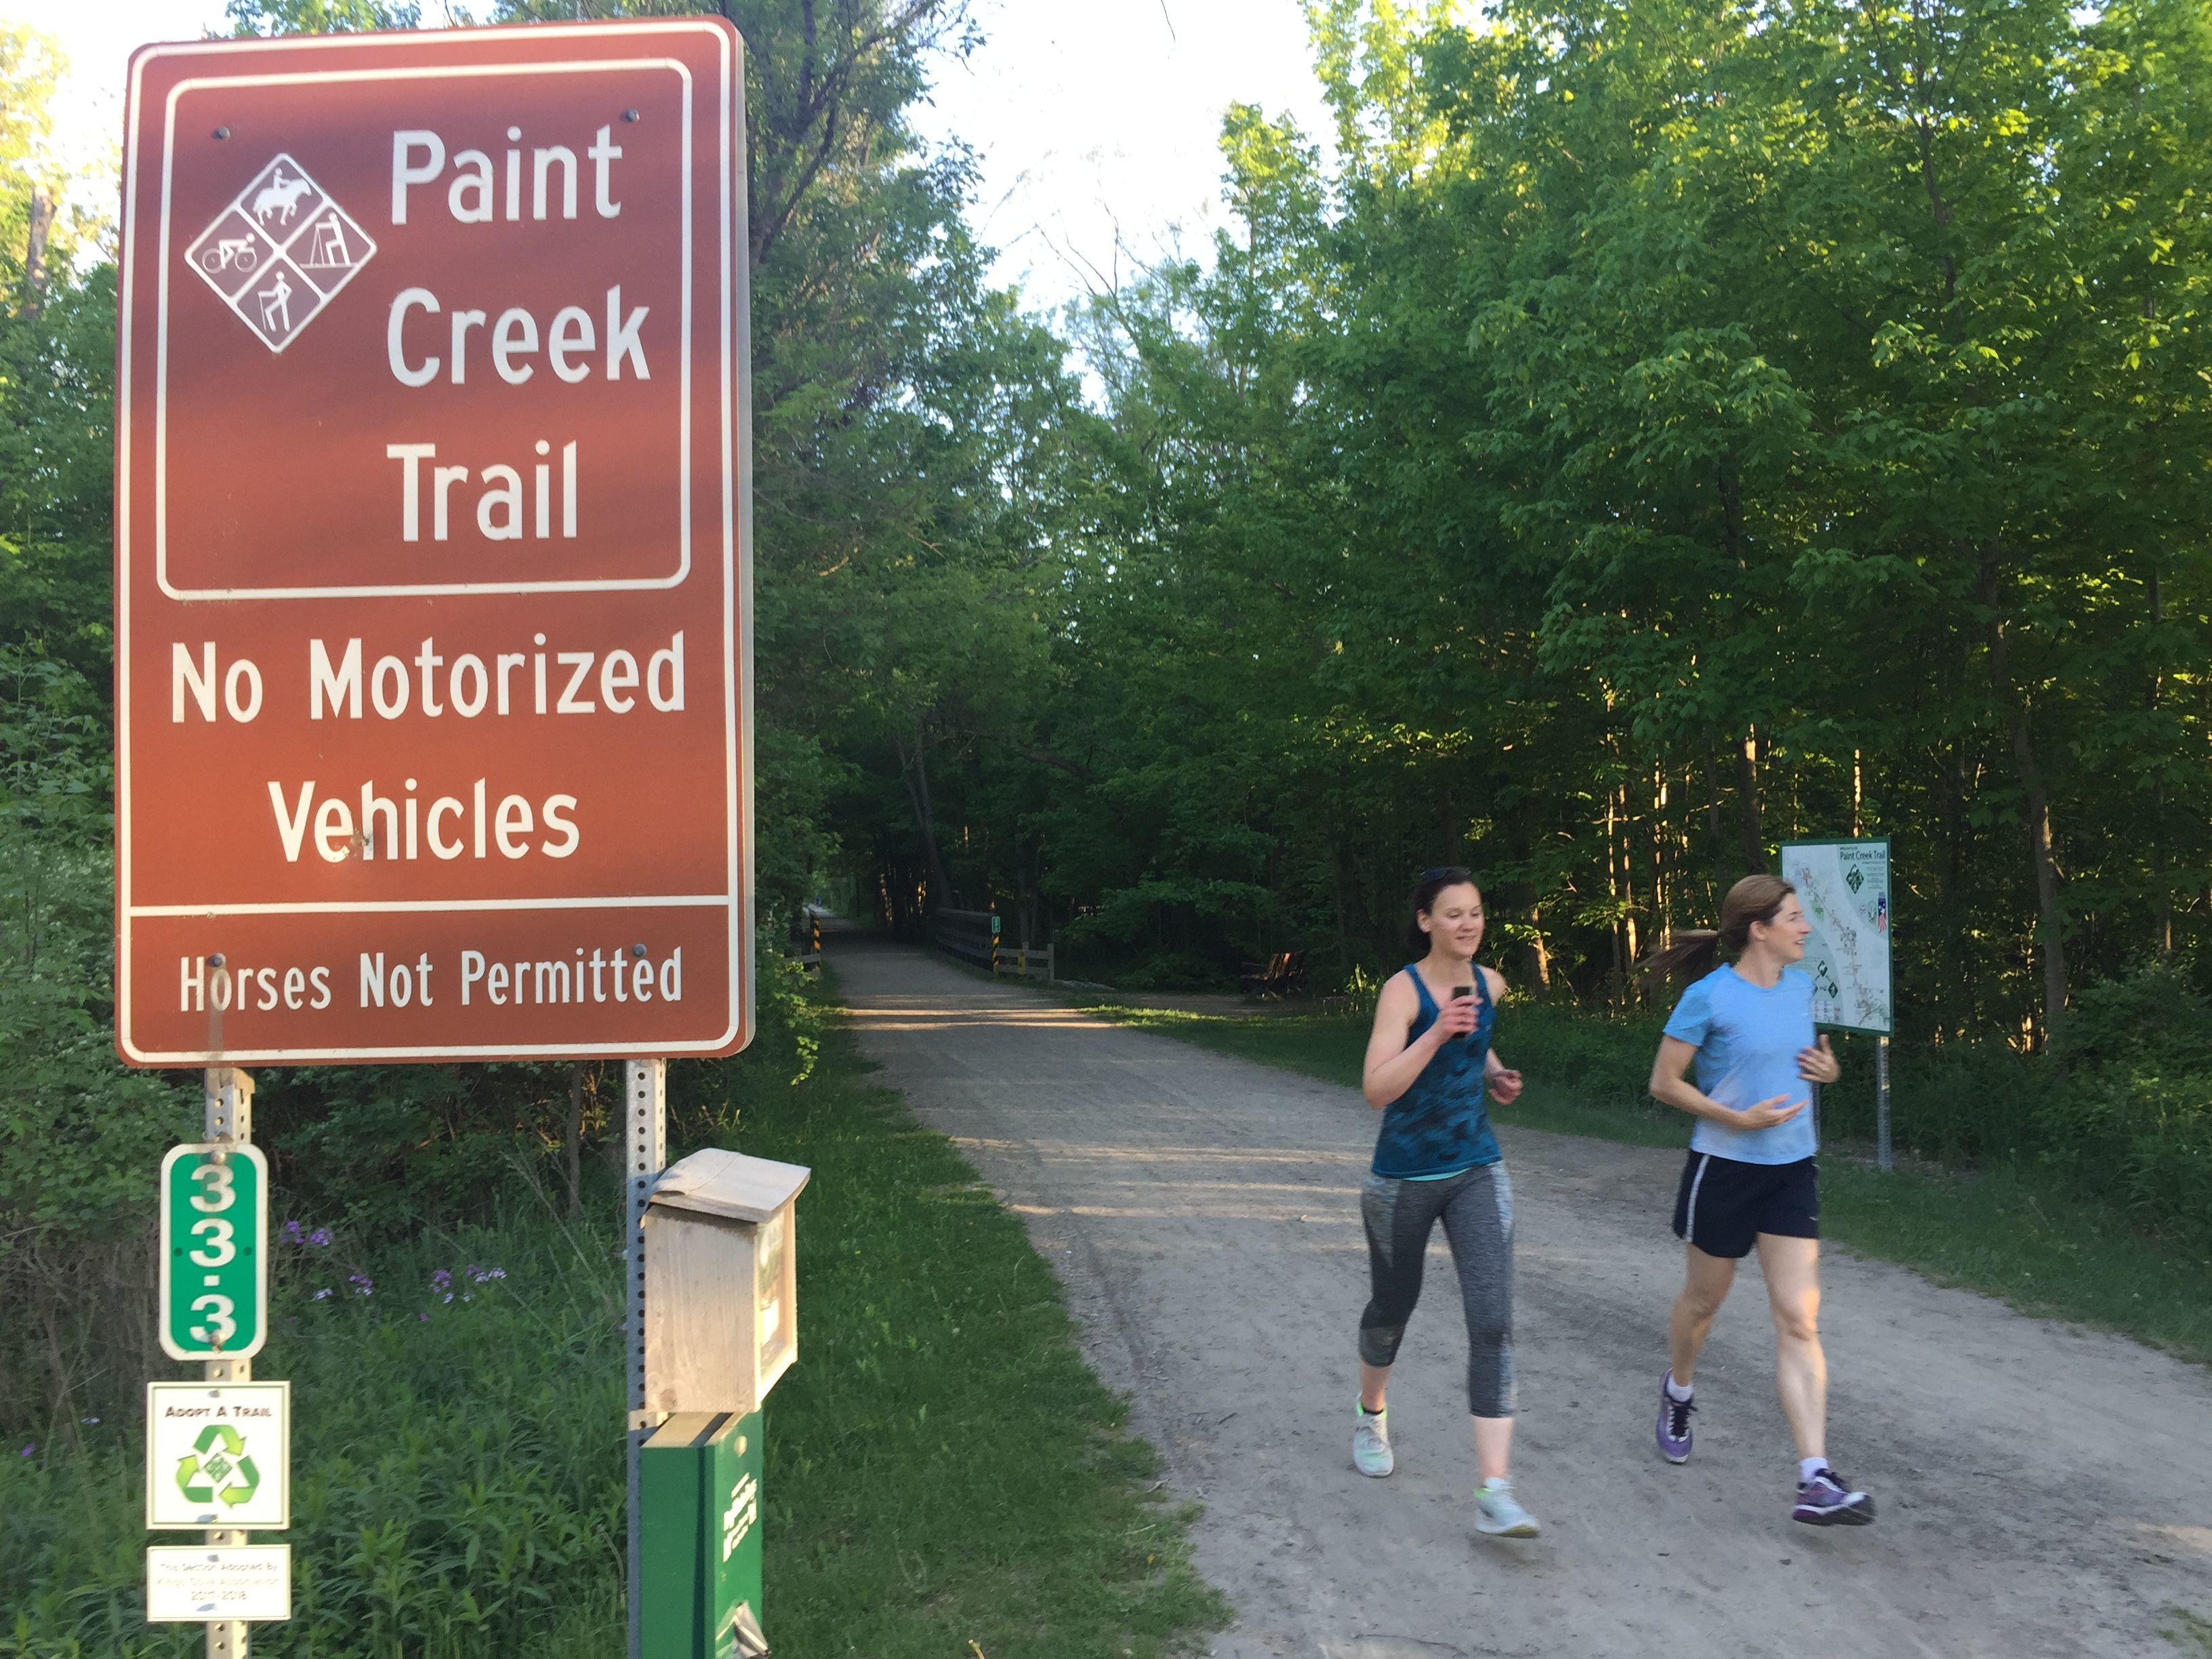 Runners and walkers will be out early Monday on the Paint Creek Trail.